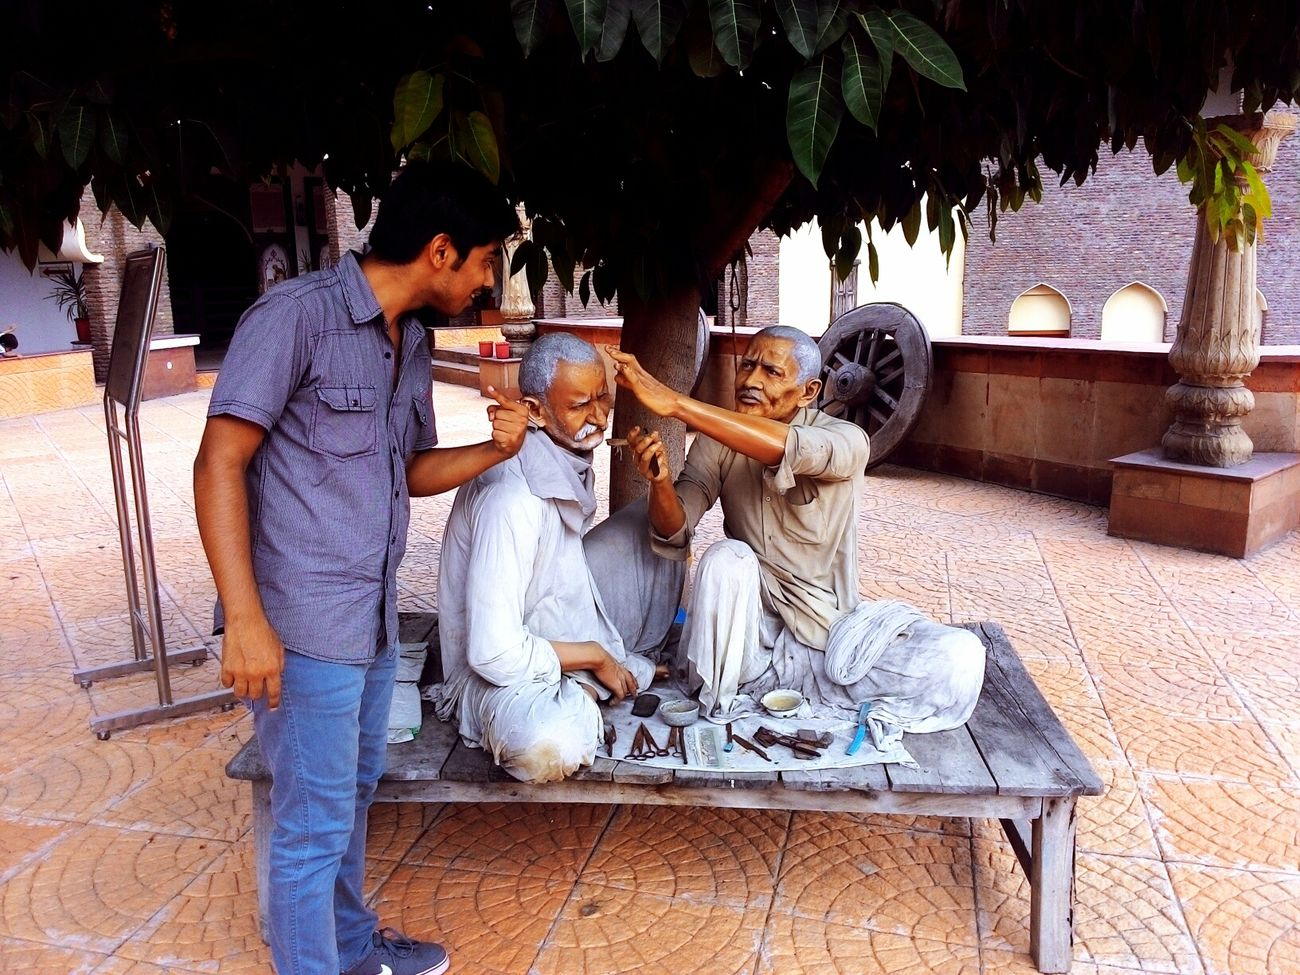 """""""Would you cut my hair too?"""". Thats what I'm trying to say to the sculptured man. This is a photo from museum of State History at Kurukshetra Univeraity. People Portrait People Working Having Fun People Photography Taking Photos Check This Out Haircut Time Haircut"""